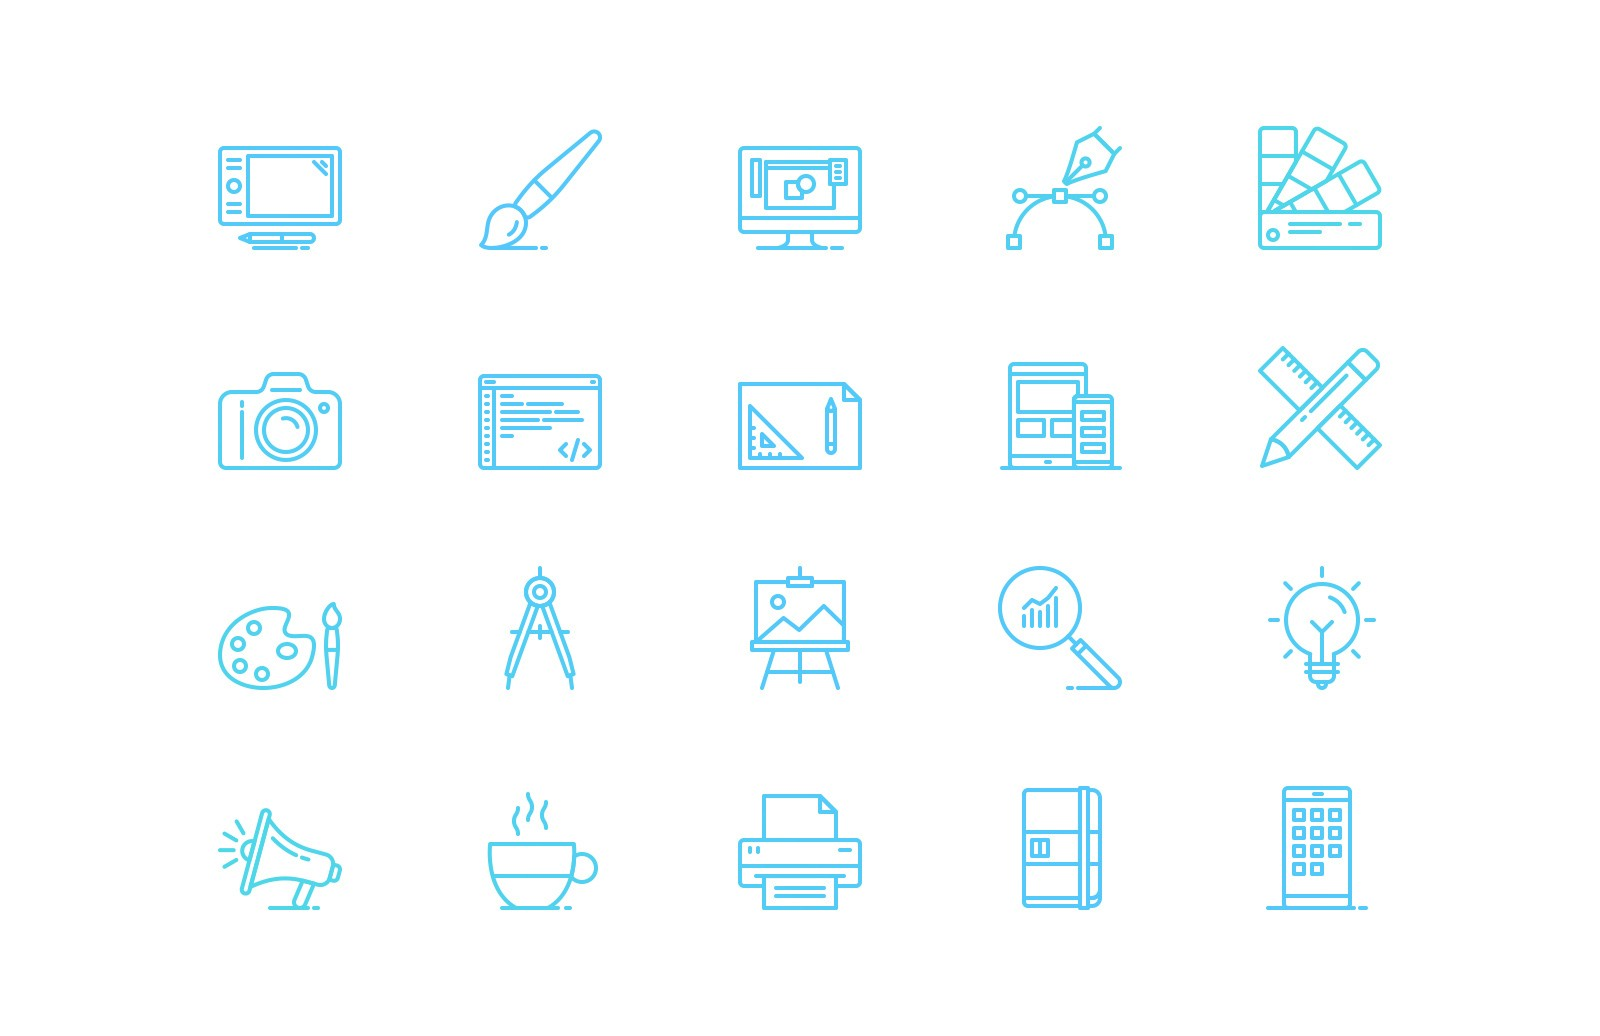 UI & Graphic Design Line Icons